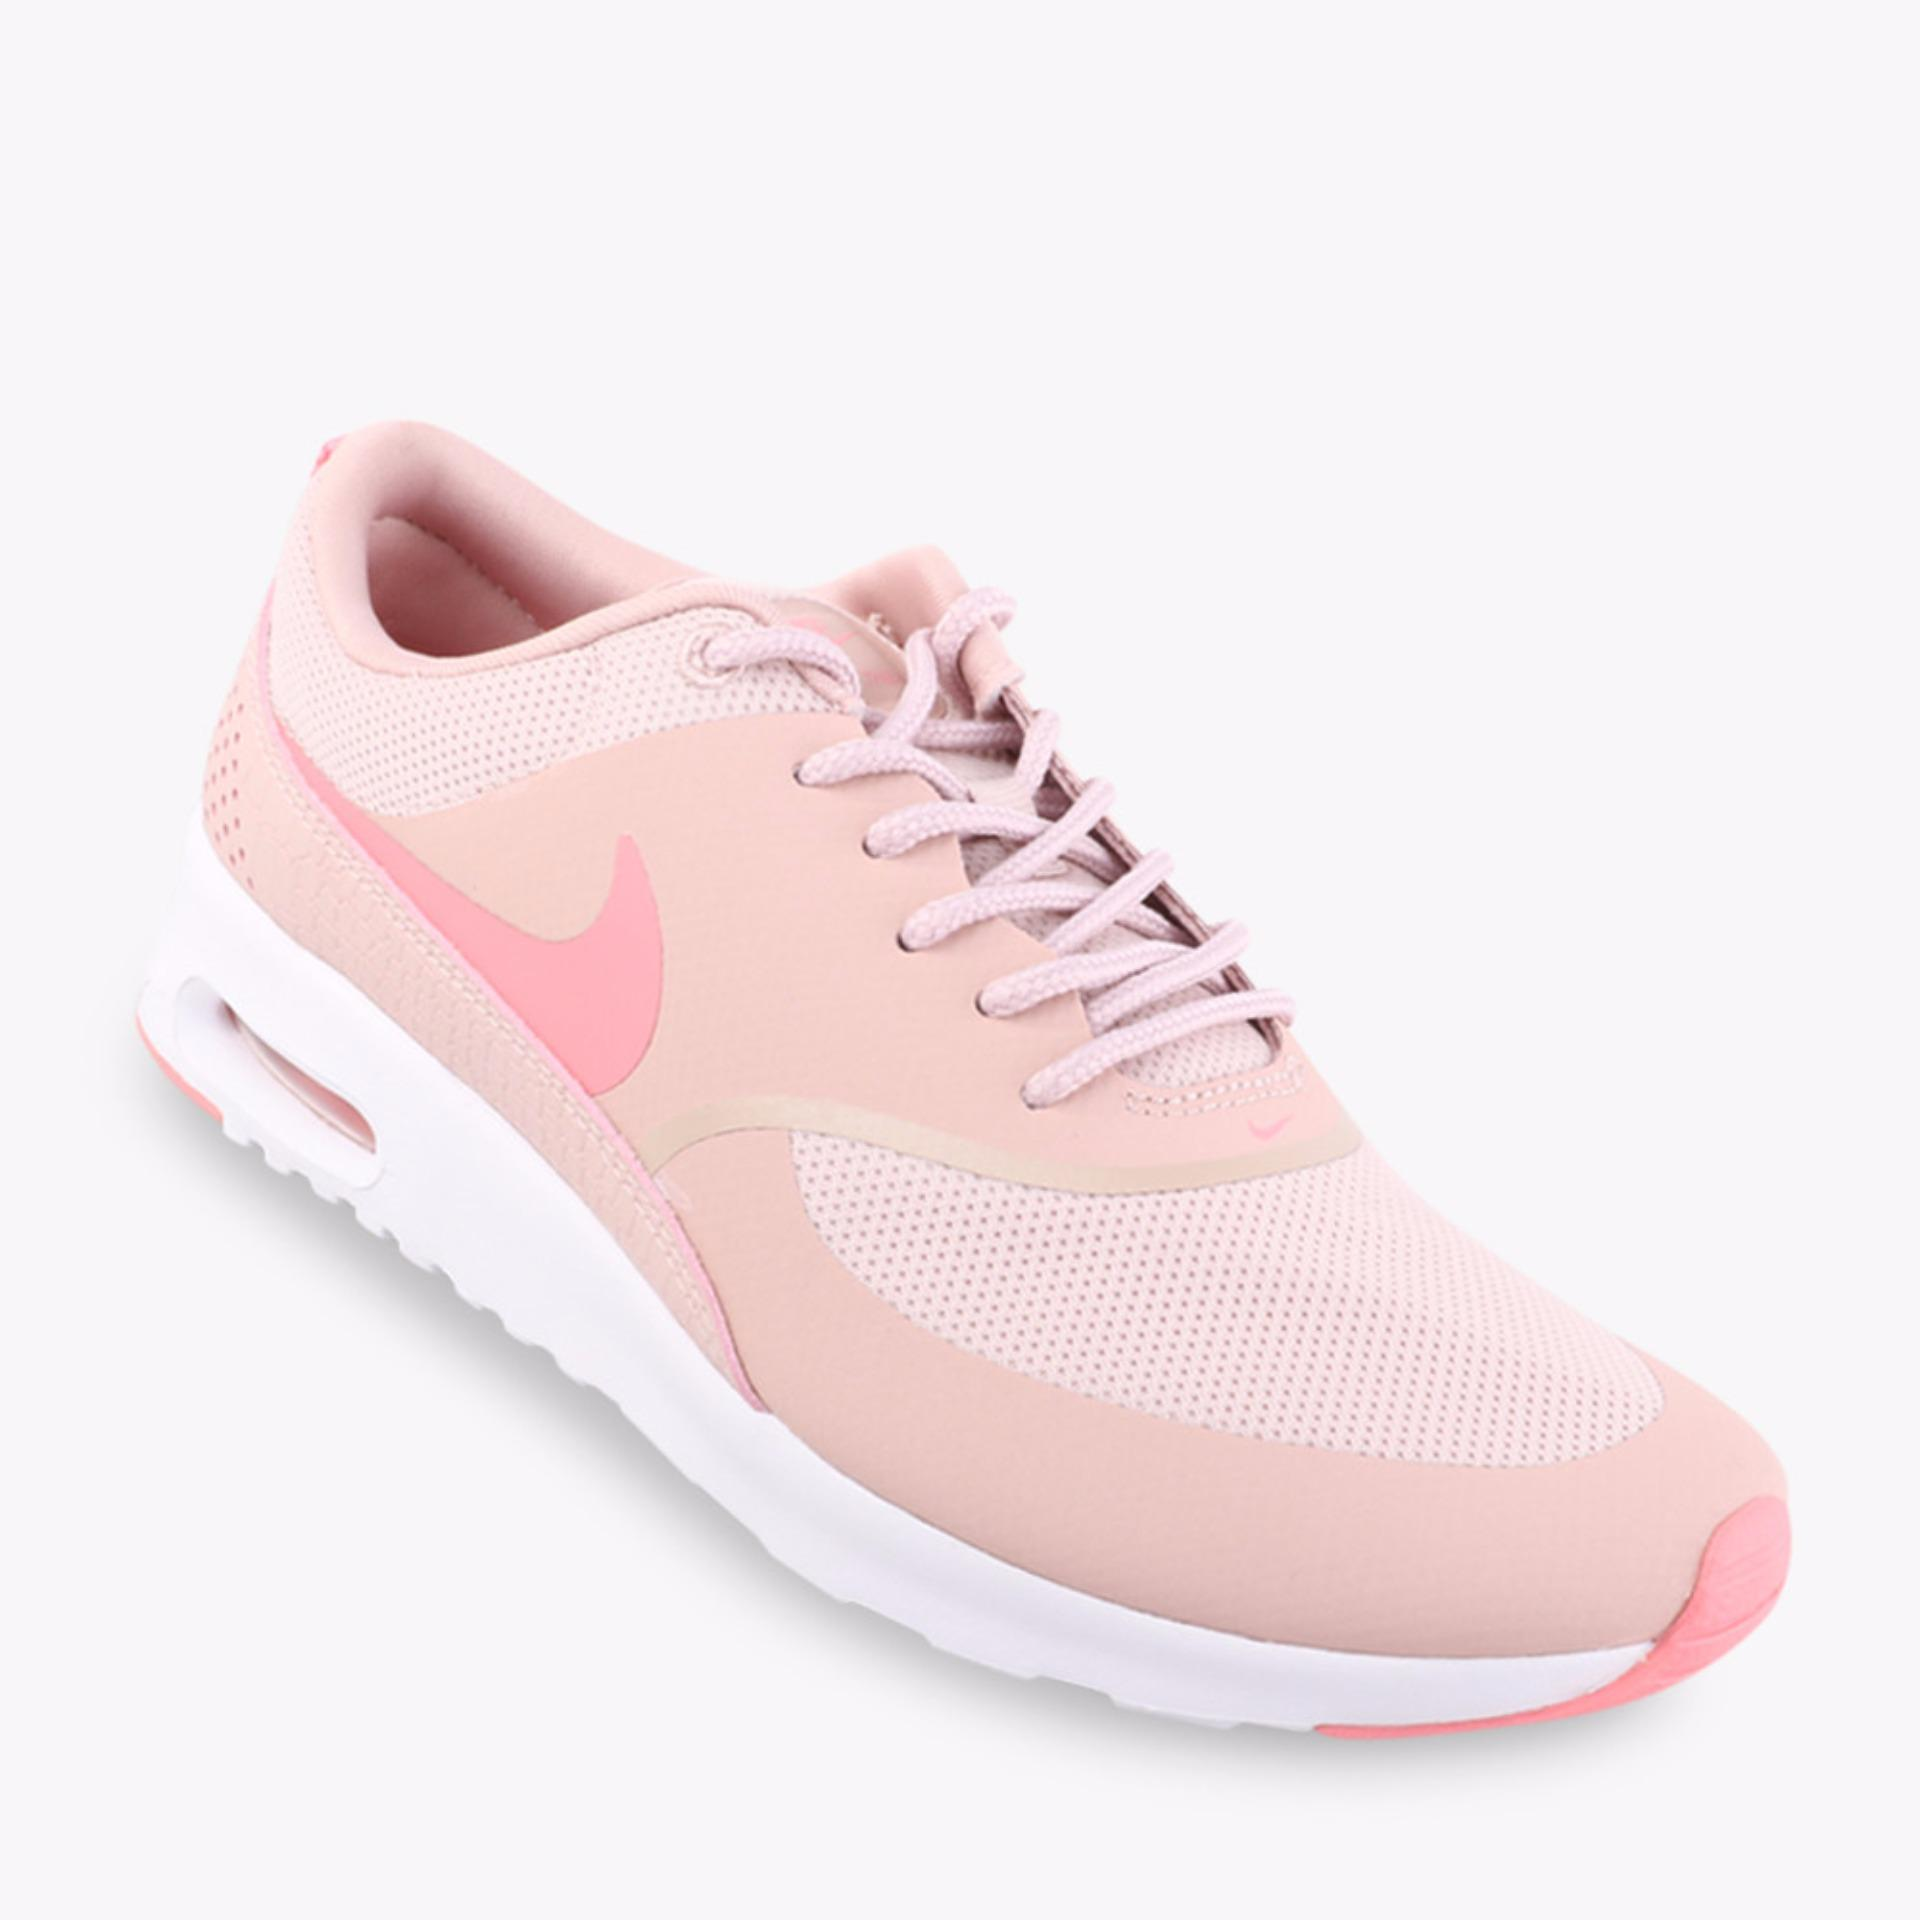 quality design 985b1 42705 cheap nike womens shoes nike air max motion lw sneaker black white y72e2  larger image f250e c03c1; reduced nike air max thea sepatu wanita pink  70837 7c6b5